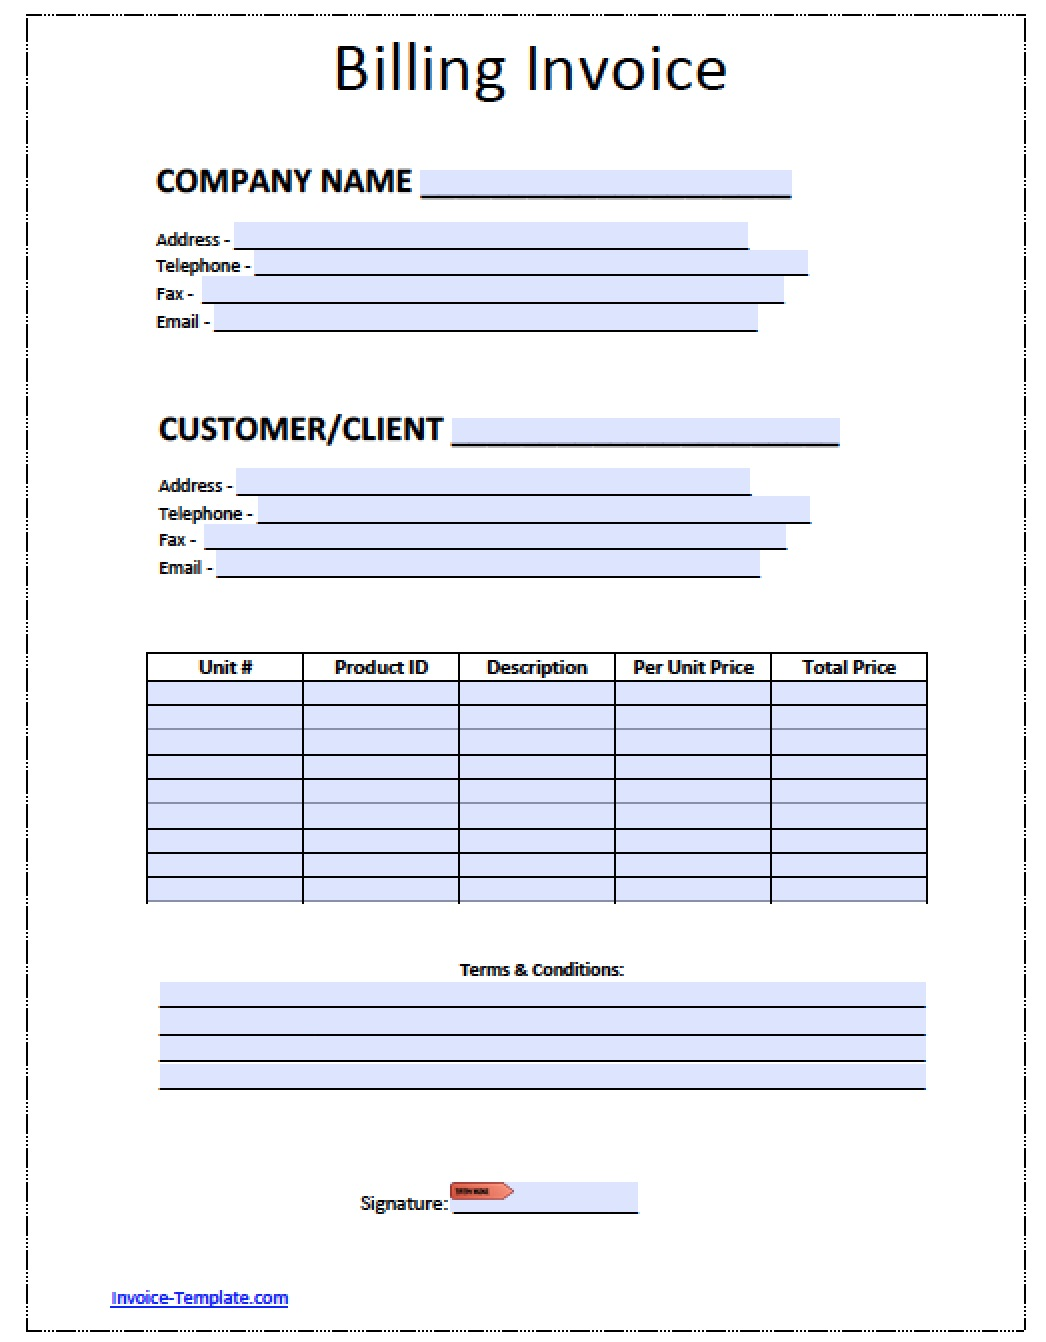 Darkfaderus  Pleasing Billing Invoice Invoices Faq U Cloudflare Support Billing  With Gorgeous Free Billing Invoice Template  Excel  Pdf  Word Doc  Billing With Appealing Cheap Invoices Also Make Free Invoice In Addition Create An Invoice Form And Snow Removal Invoice Template As Well As Reconciling Invoices Additionally Form Invoice From Happytomco With Darkfaderus  Gorgeous Billing Invoice Invoices Faq U Cloudflare Support Billing  With Appealing Free Billing Invoice Template  Excel  Pdf  Word Doc  Billing And Pleasing Cheap Invoices Also Make Free Invoice In Addition Create An Invoice Form From Happytomco